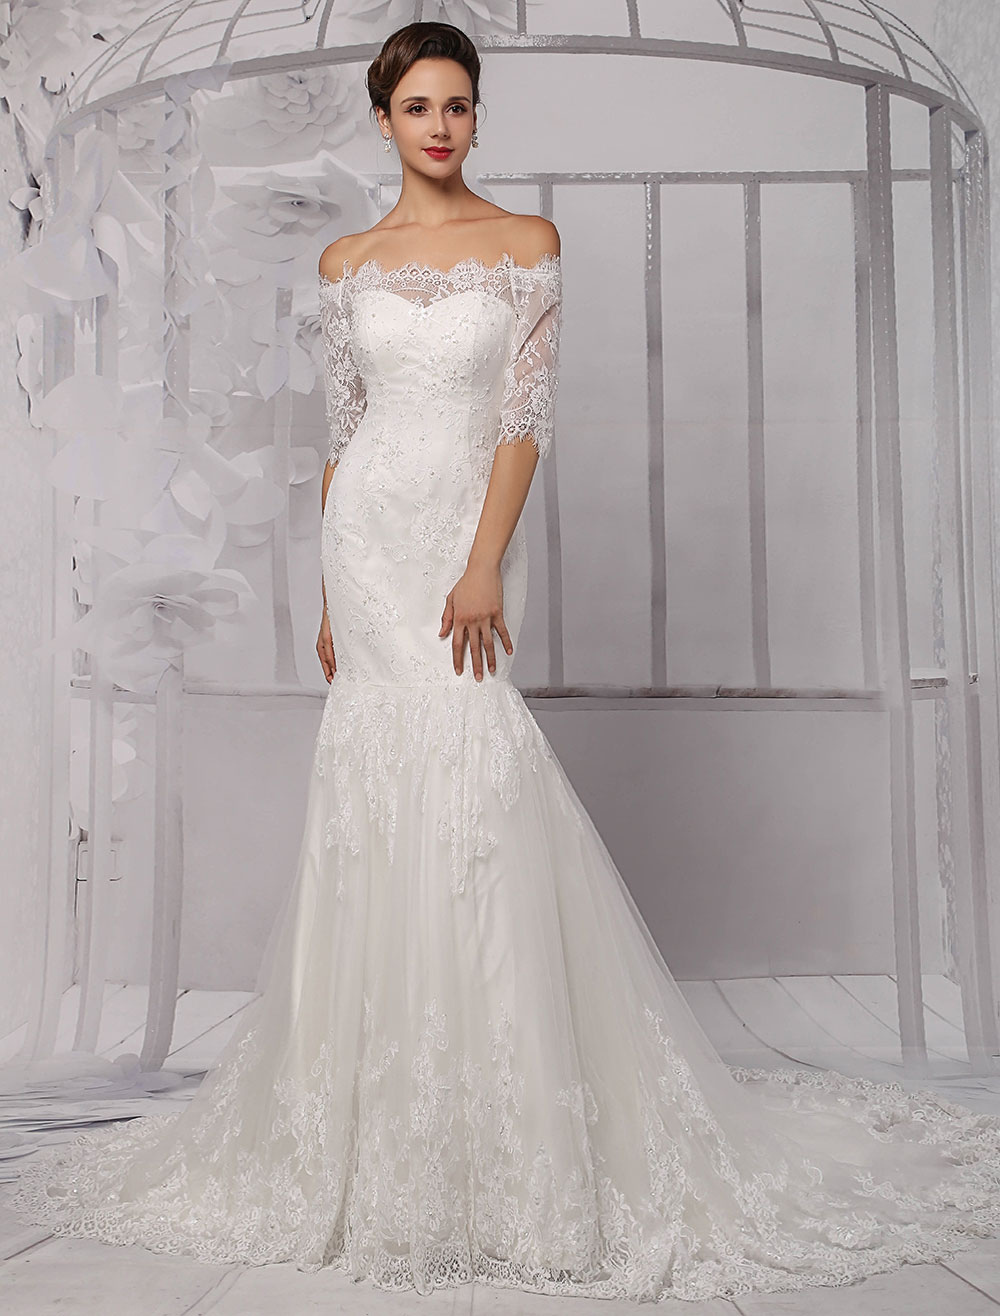 Half Sleeve Off The Shoulder Lace Wedding Dress In Trumpet Style Milanoo